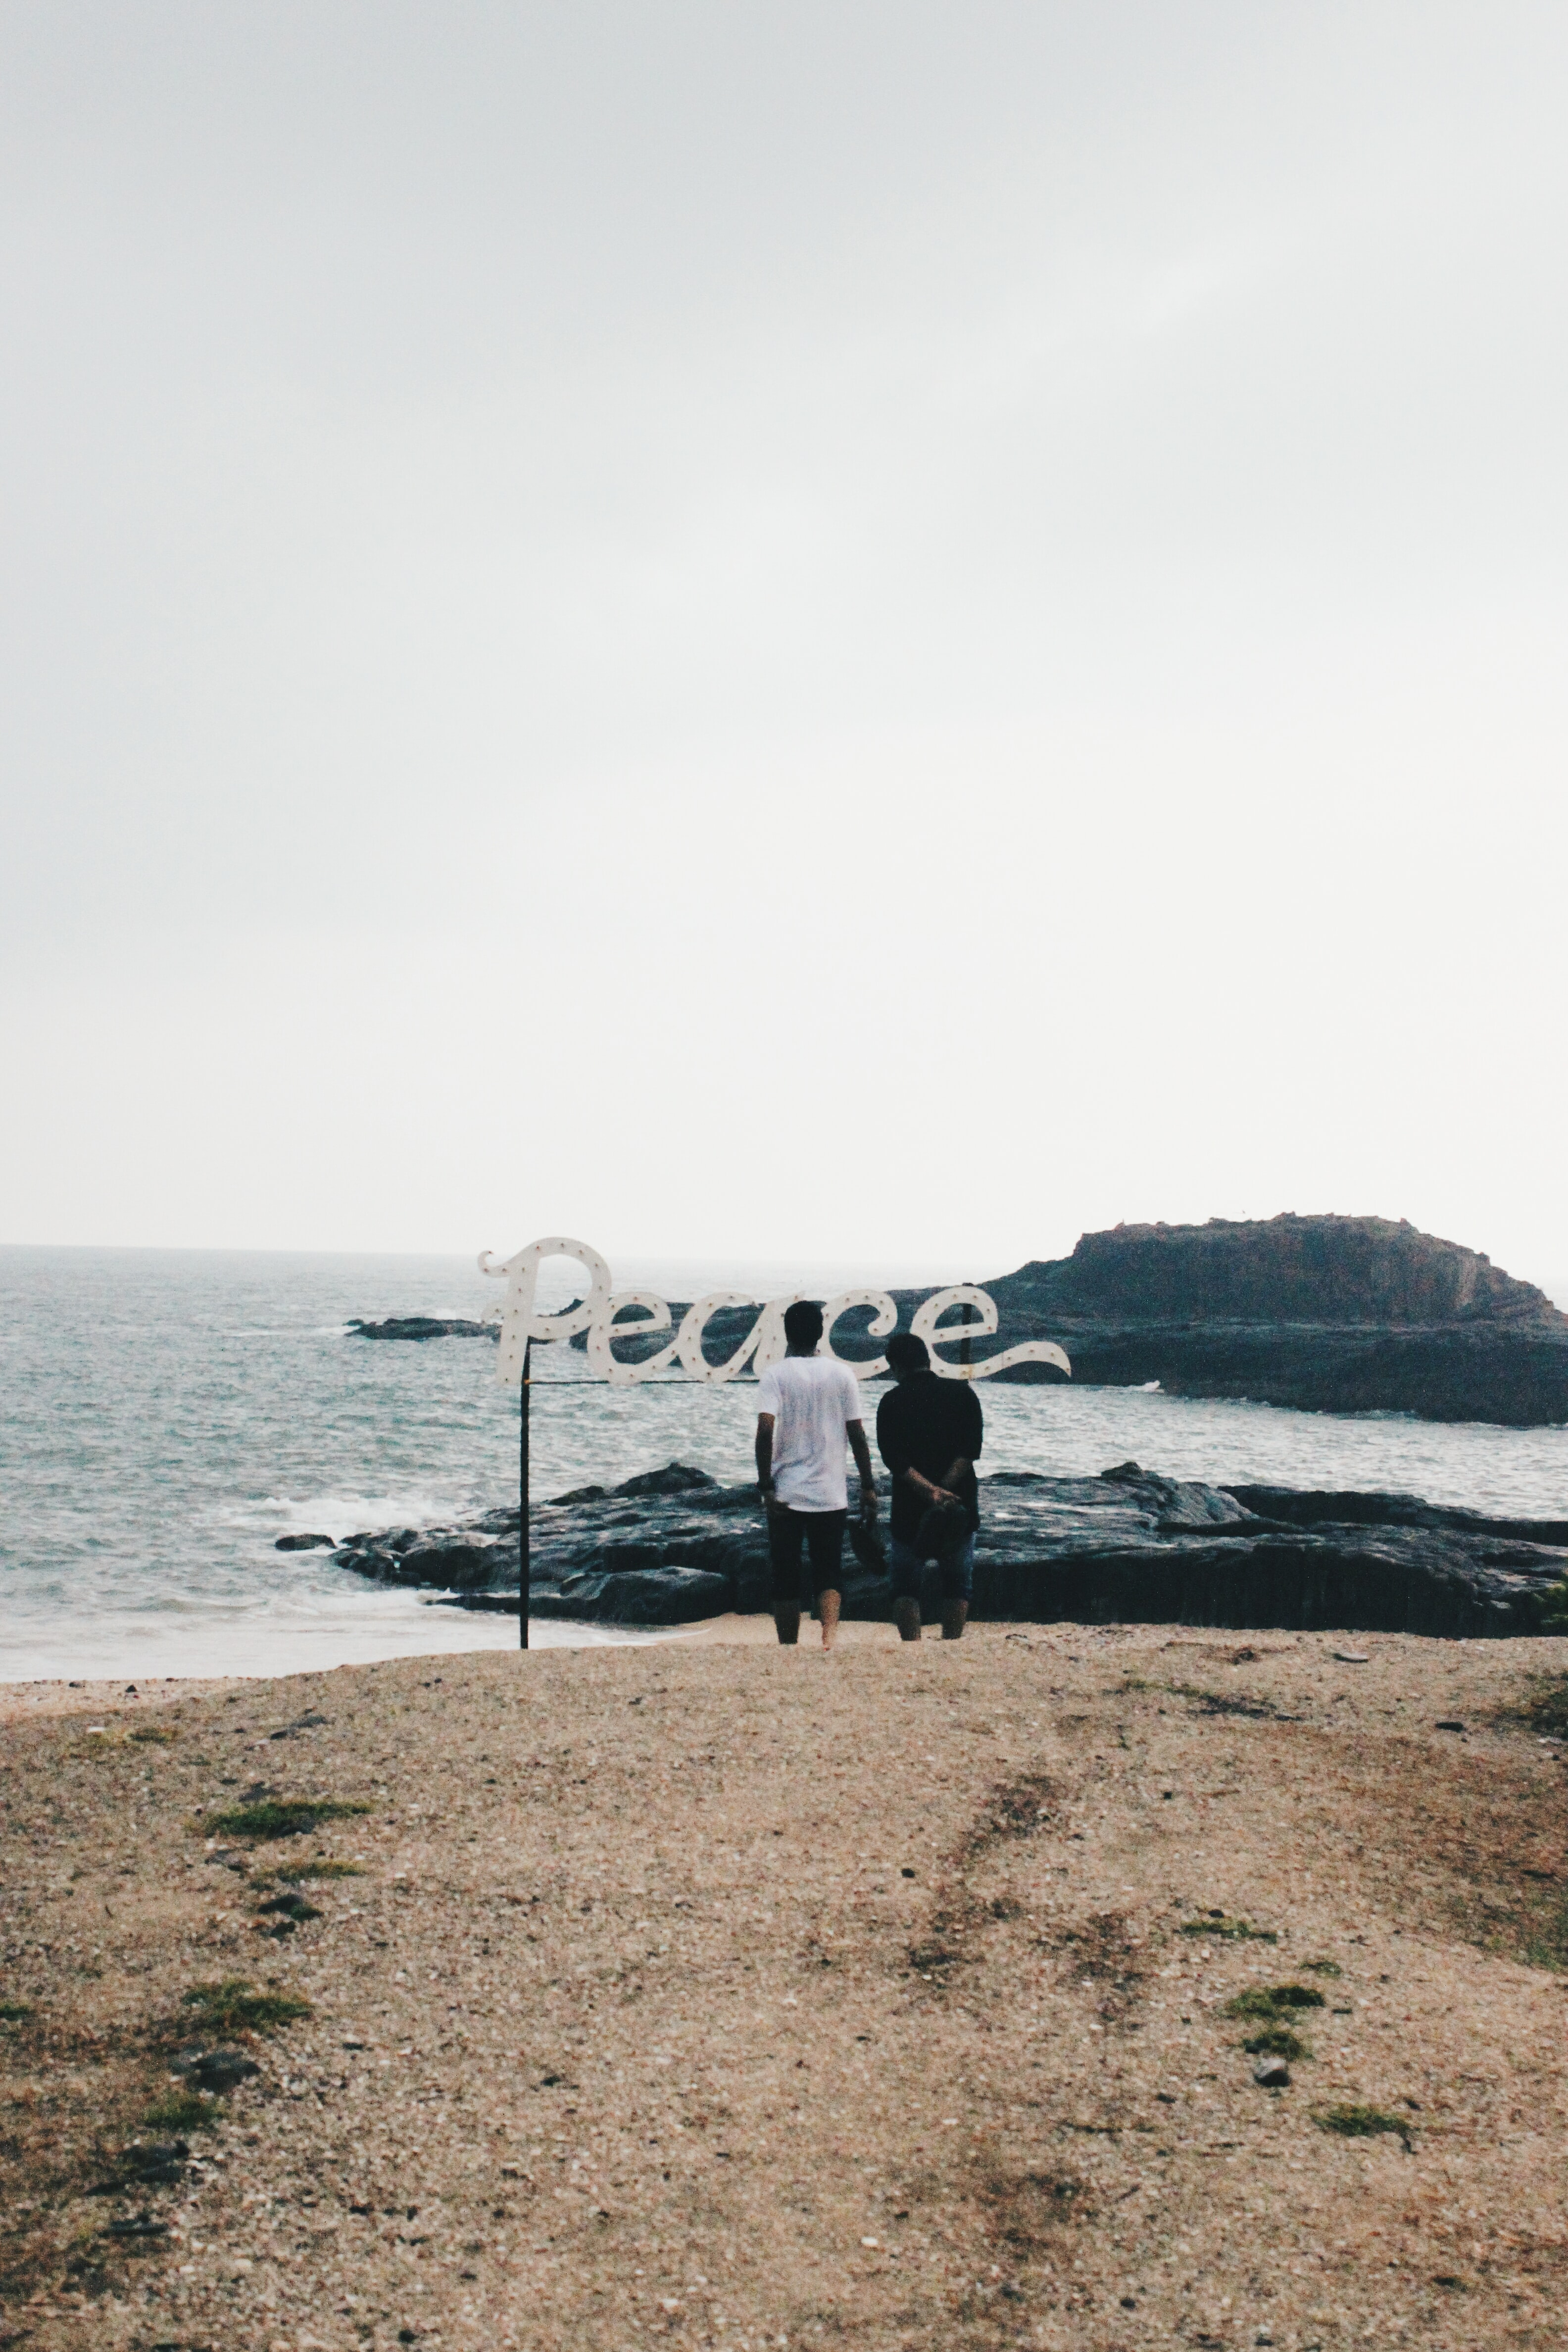 two persons standing on seashore